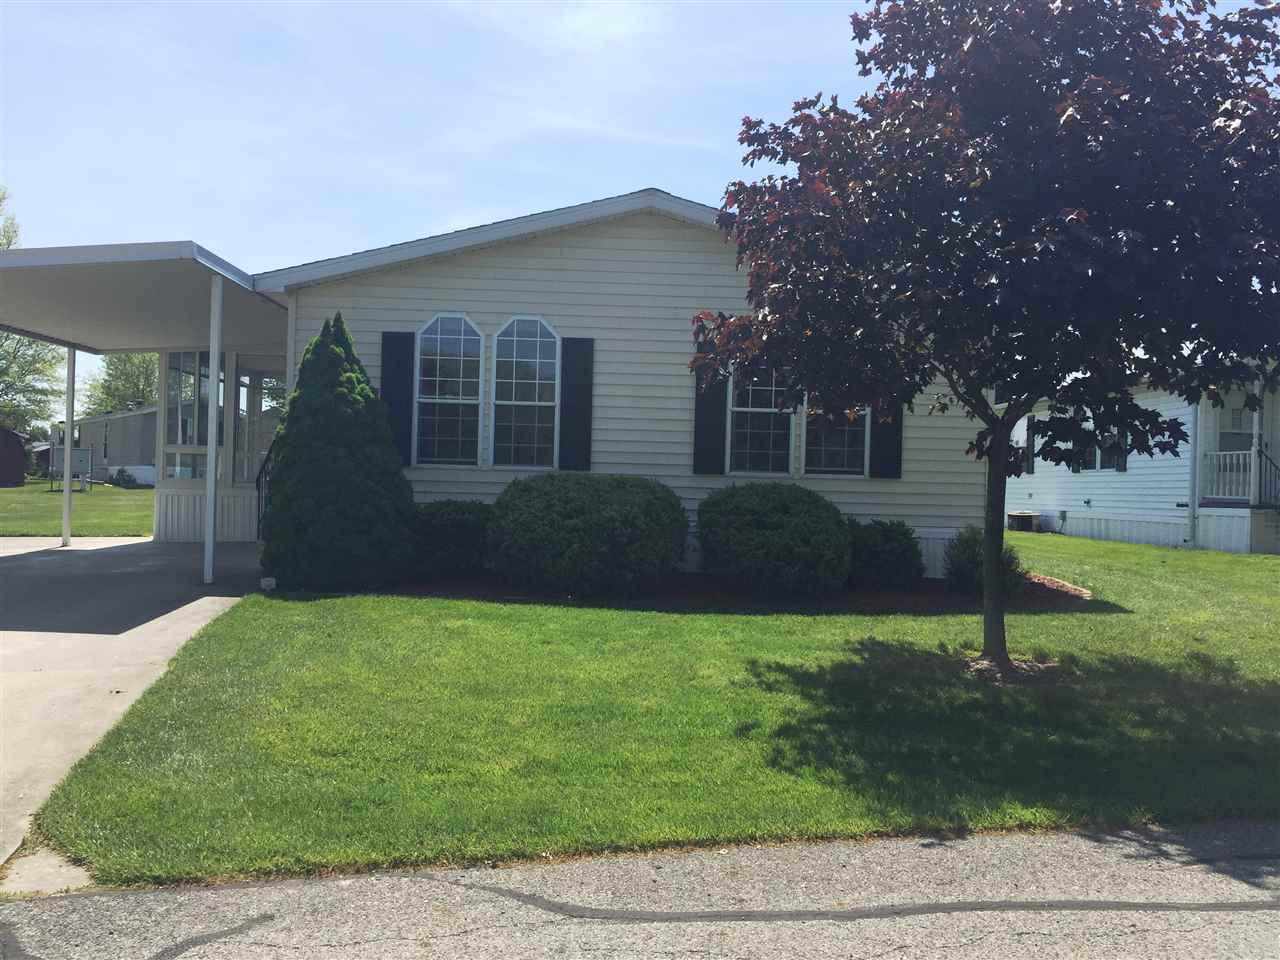 Photo of 805 Baker St Lot 124  Plymouth  IN